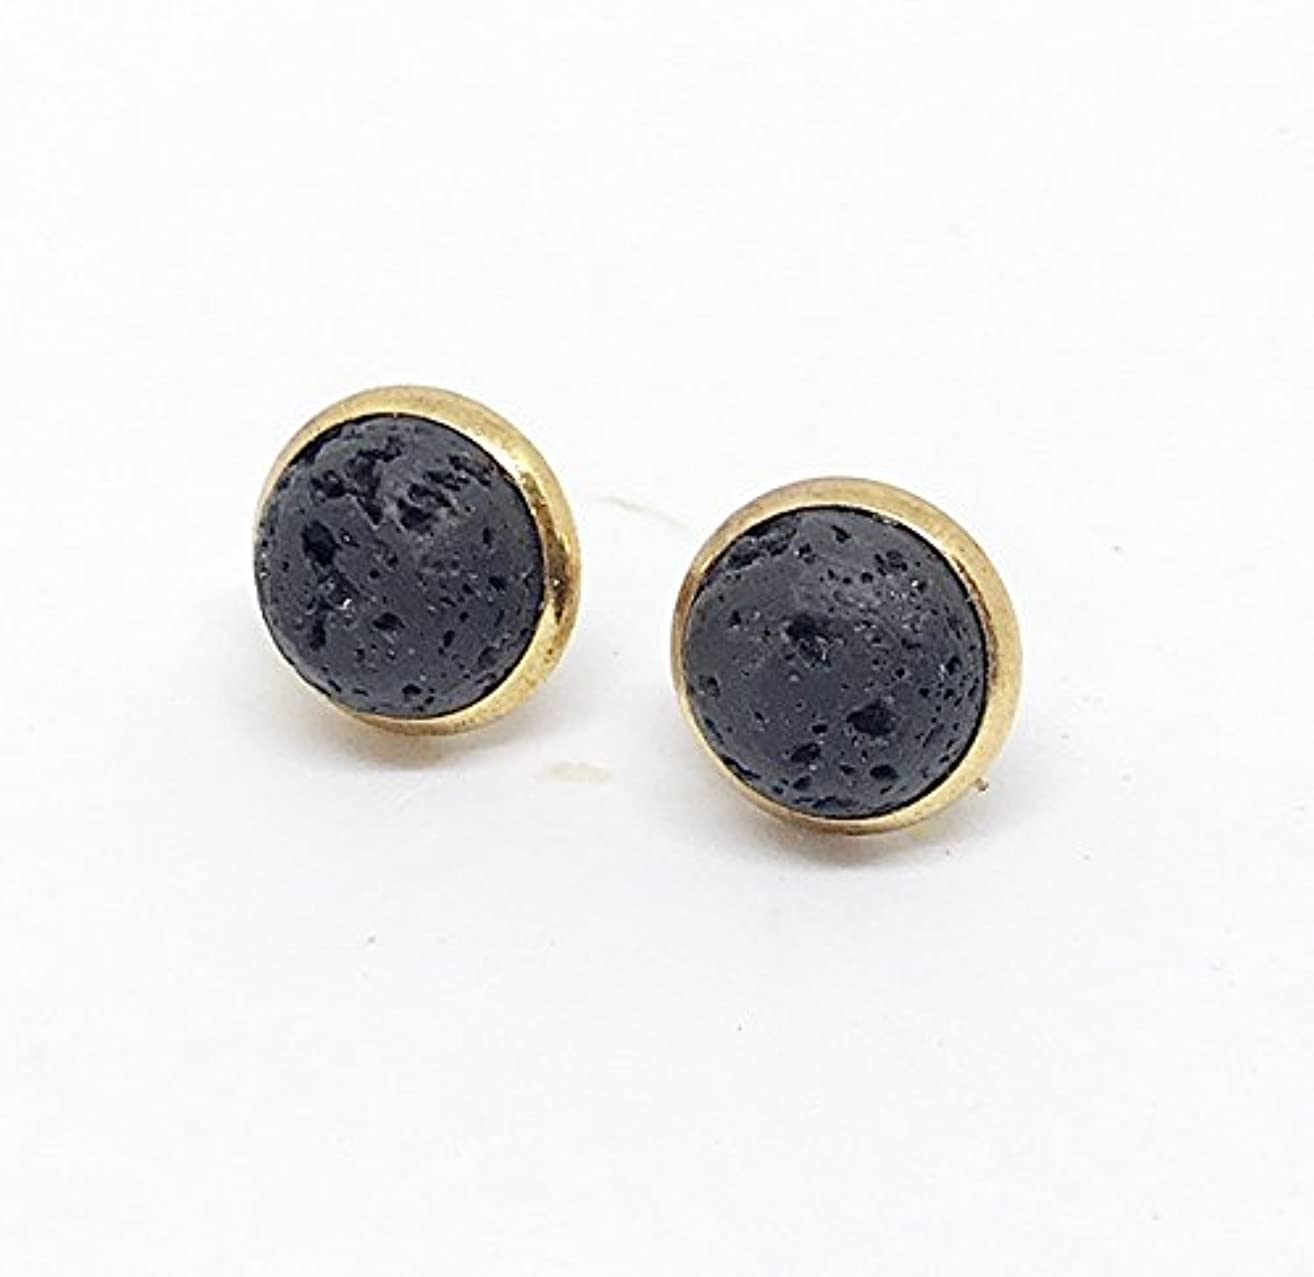 Gold Lava Rock Diffuser Earrings, Diffuser Jewelry, Lava Rock Earrings, Lava Jewelry, Gifts for Her, Aromatherapy Jewelry, Essential Oil Accessories, Post Earrings, Stud Earrings,